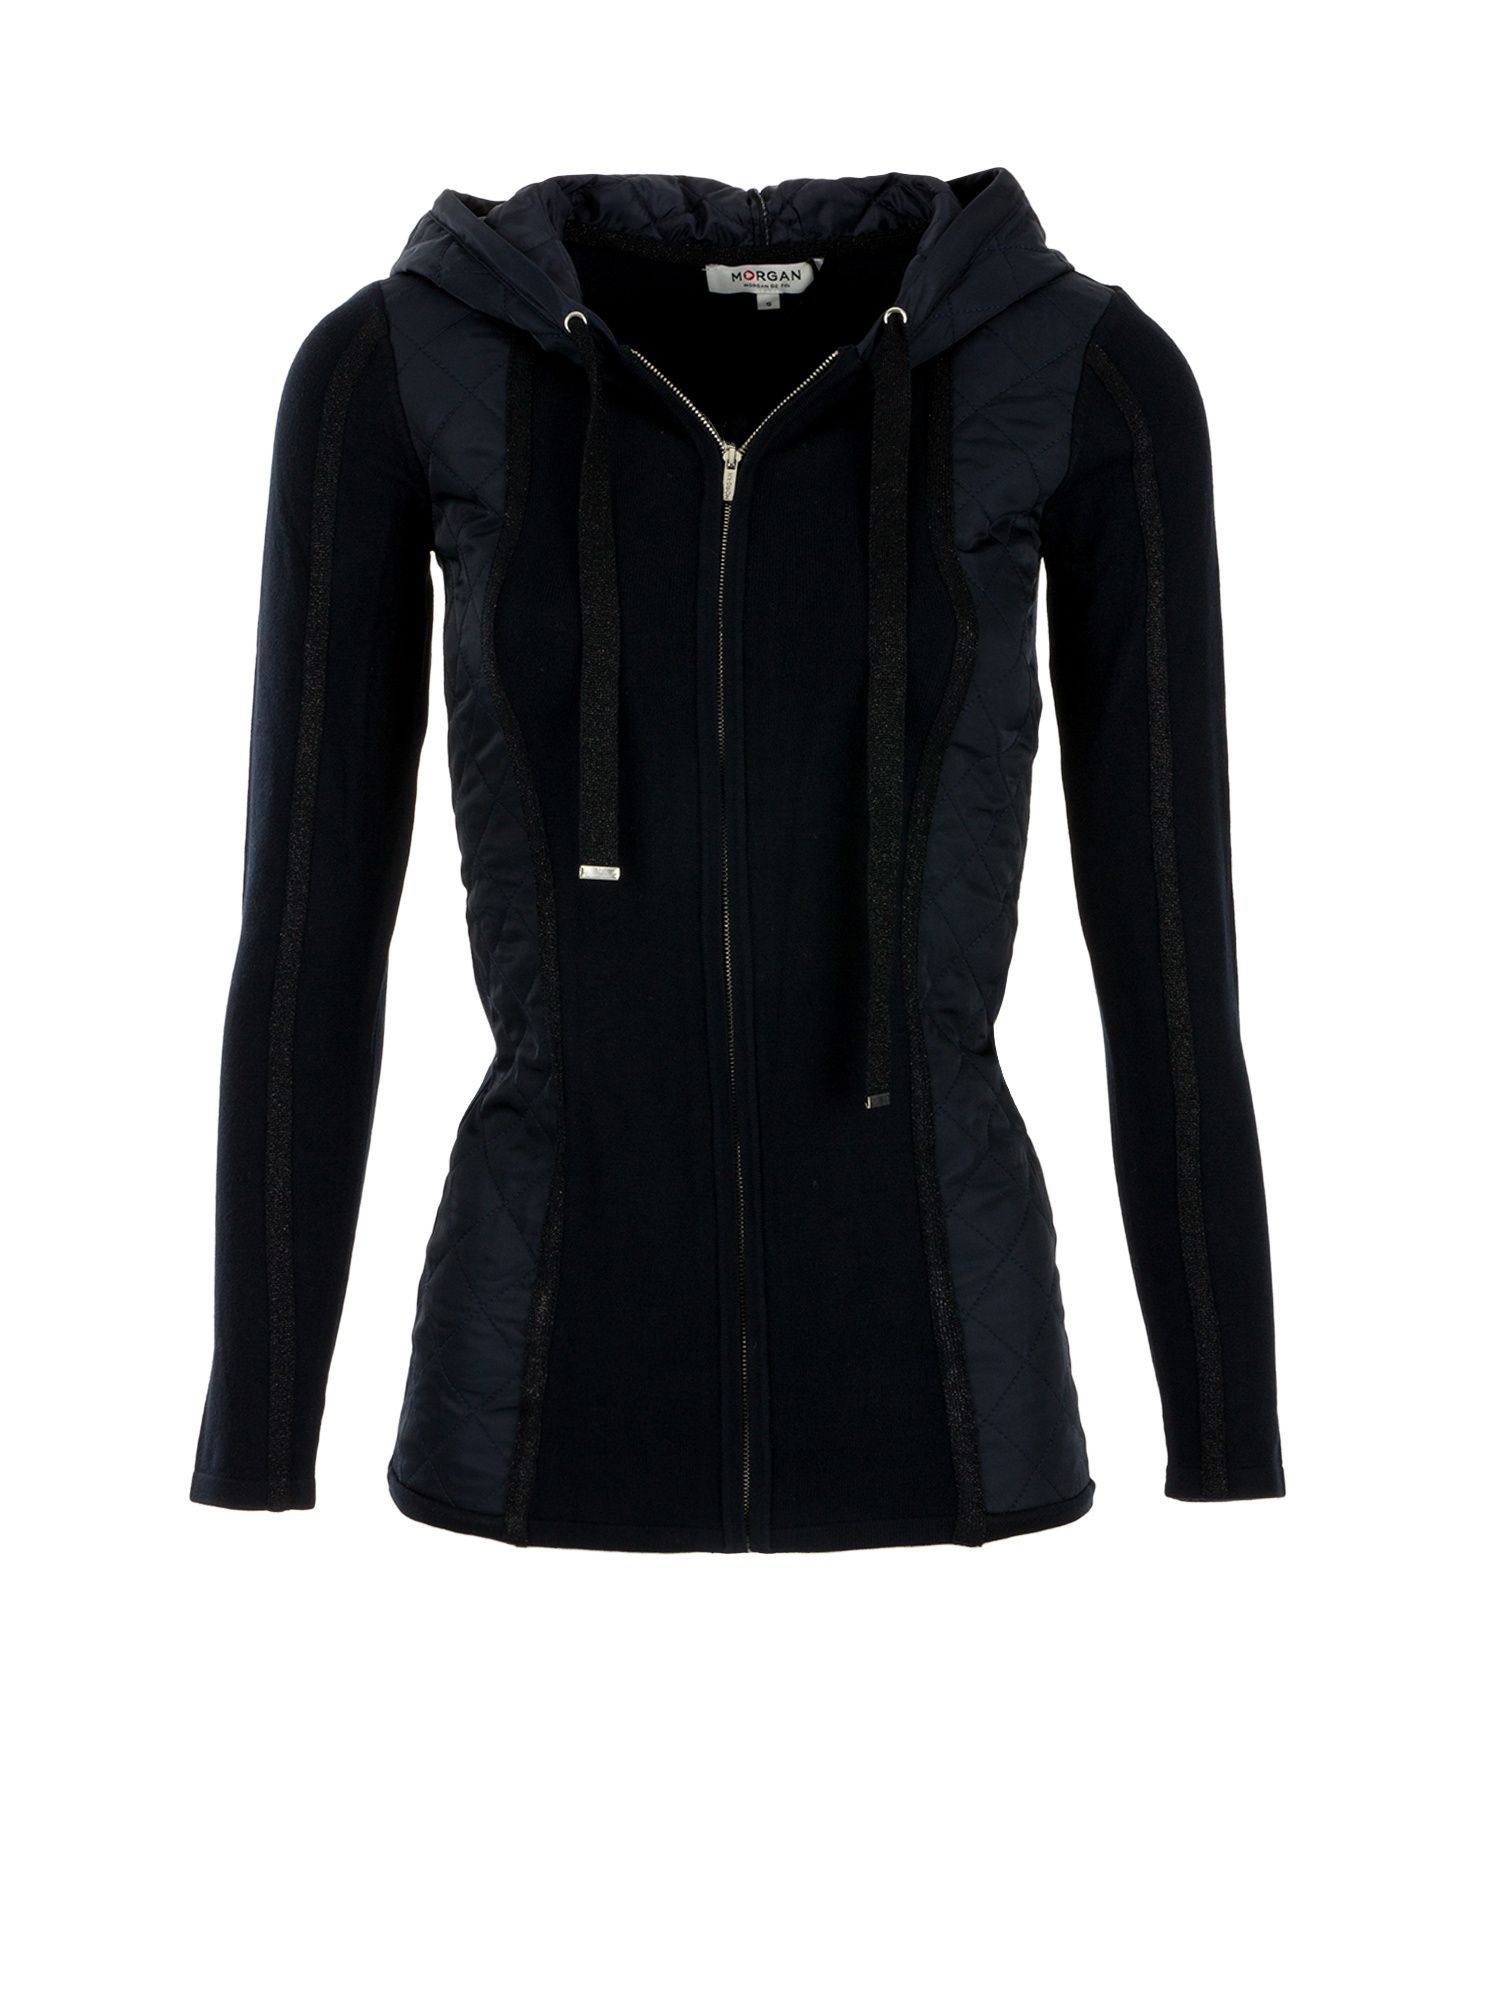 Morgan Quilted Paneled and Knit Cardigan Navy